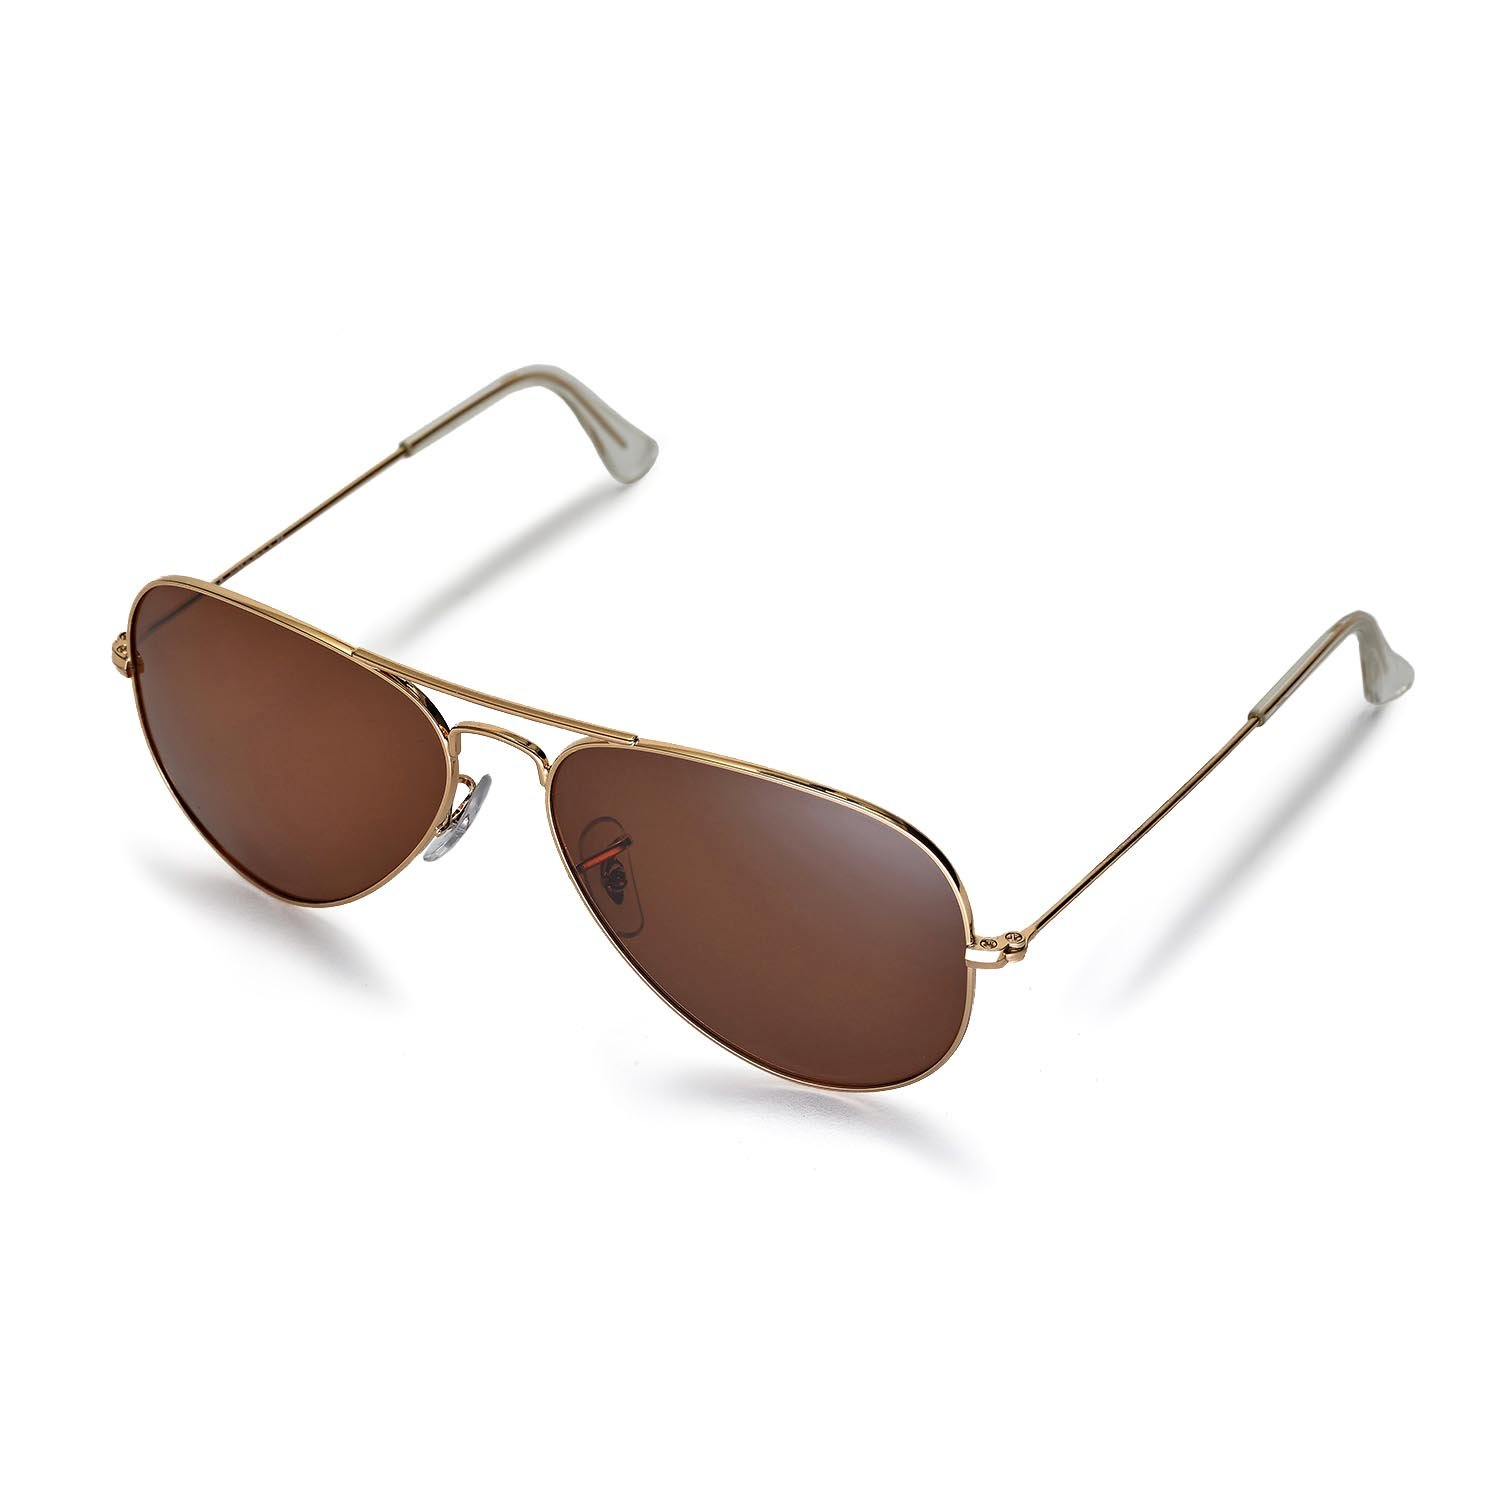 Walleva Replacement Lenses for Ray-Ban Aviator Large Metal RB3025 58mm  Sunglasses - 6 Options f74d82725ebf